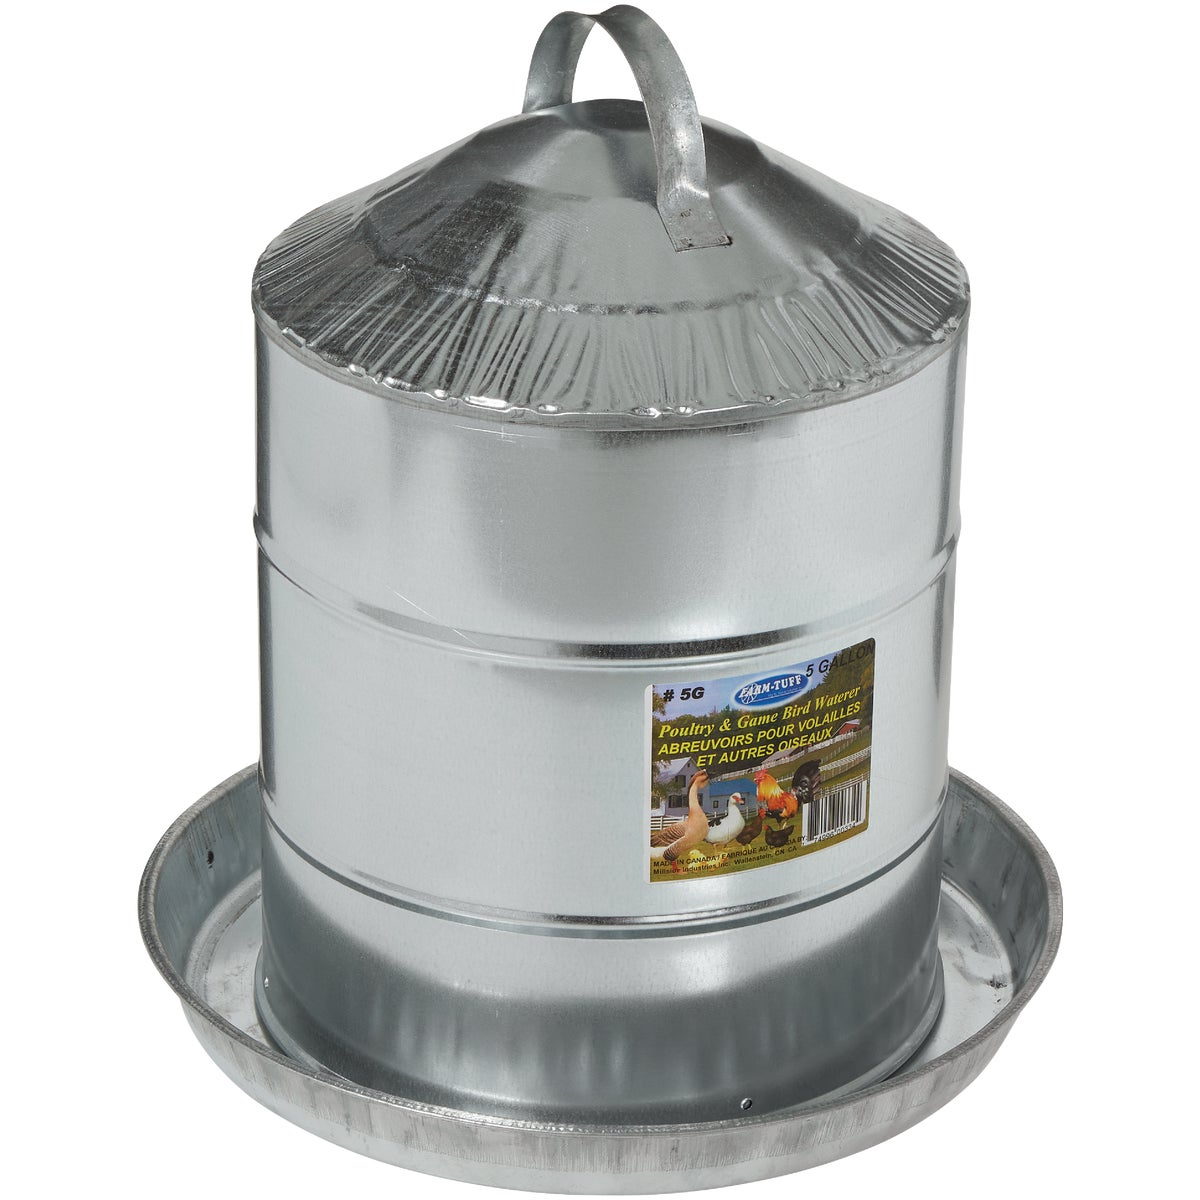 5GAL POULTRY FOUNTAIN - 9835 by Miller Manufacturing